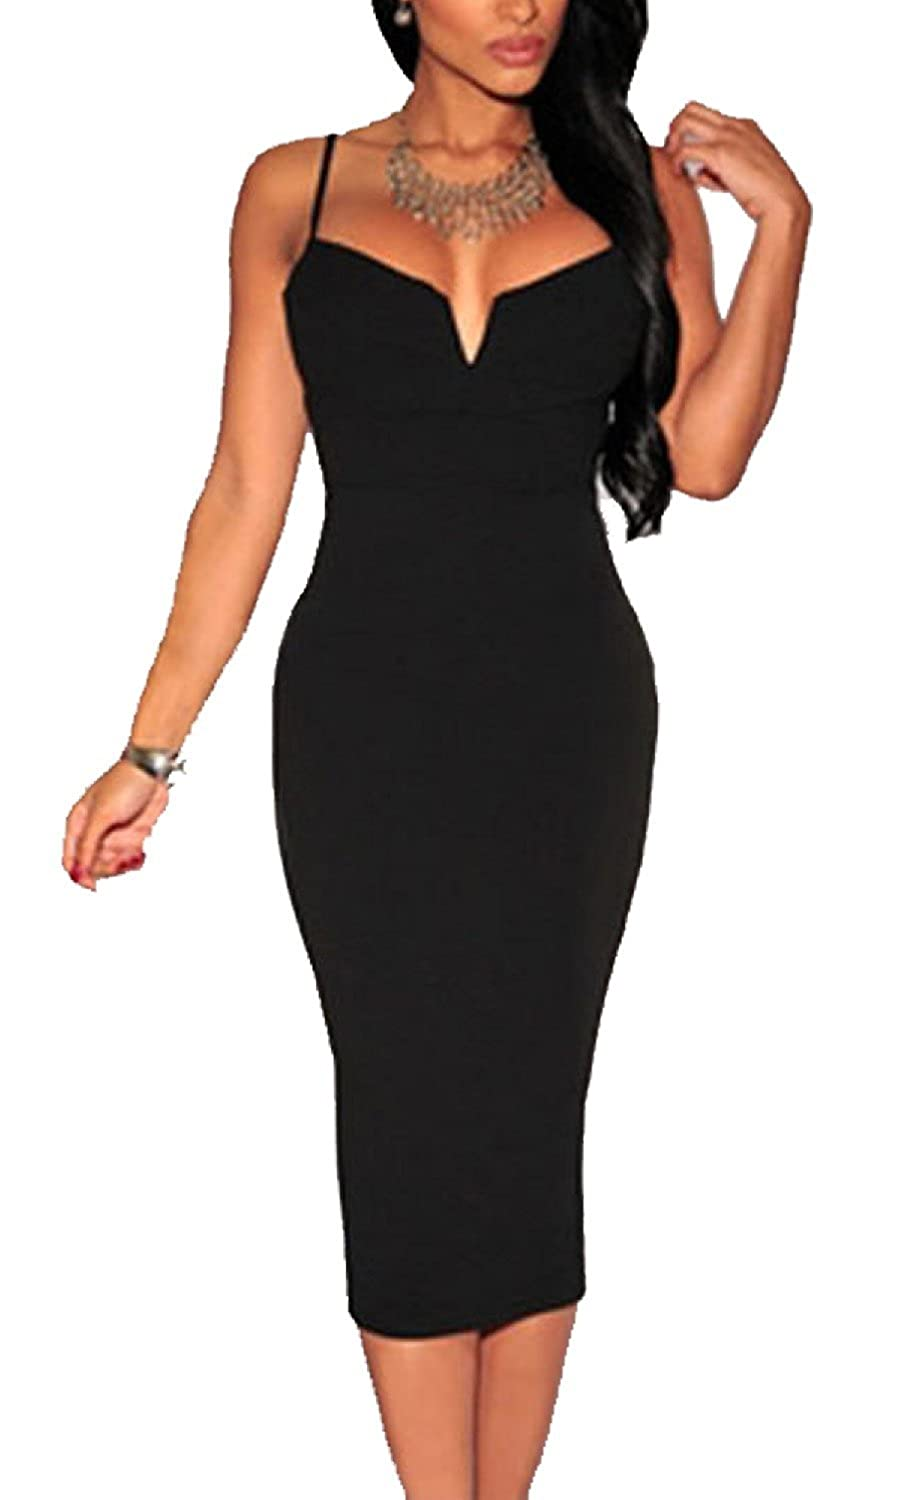 Women's Sexy Plunging V Neck Party Midi Evening Dress For Summer